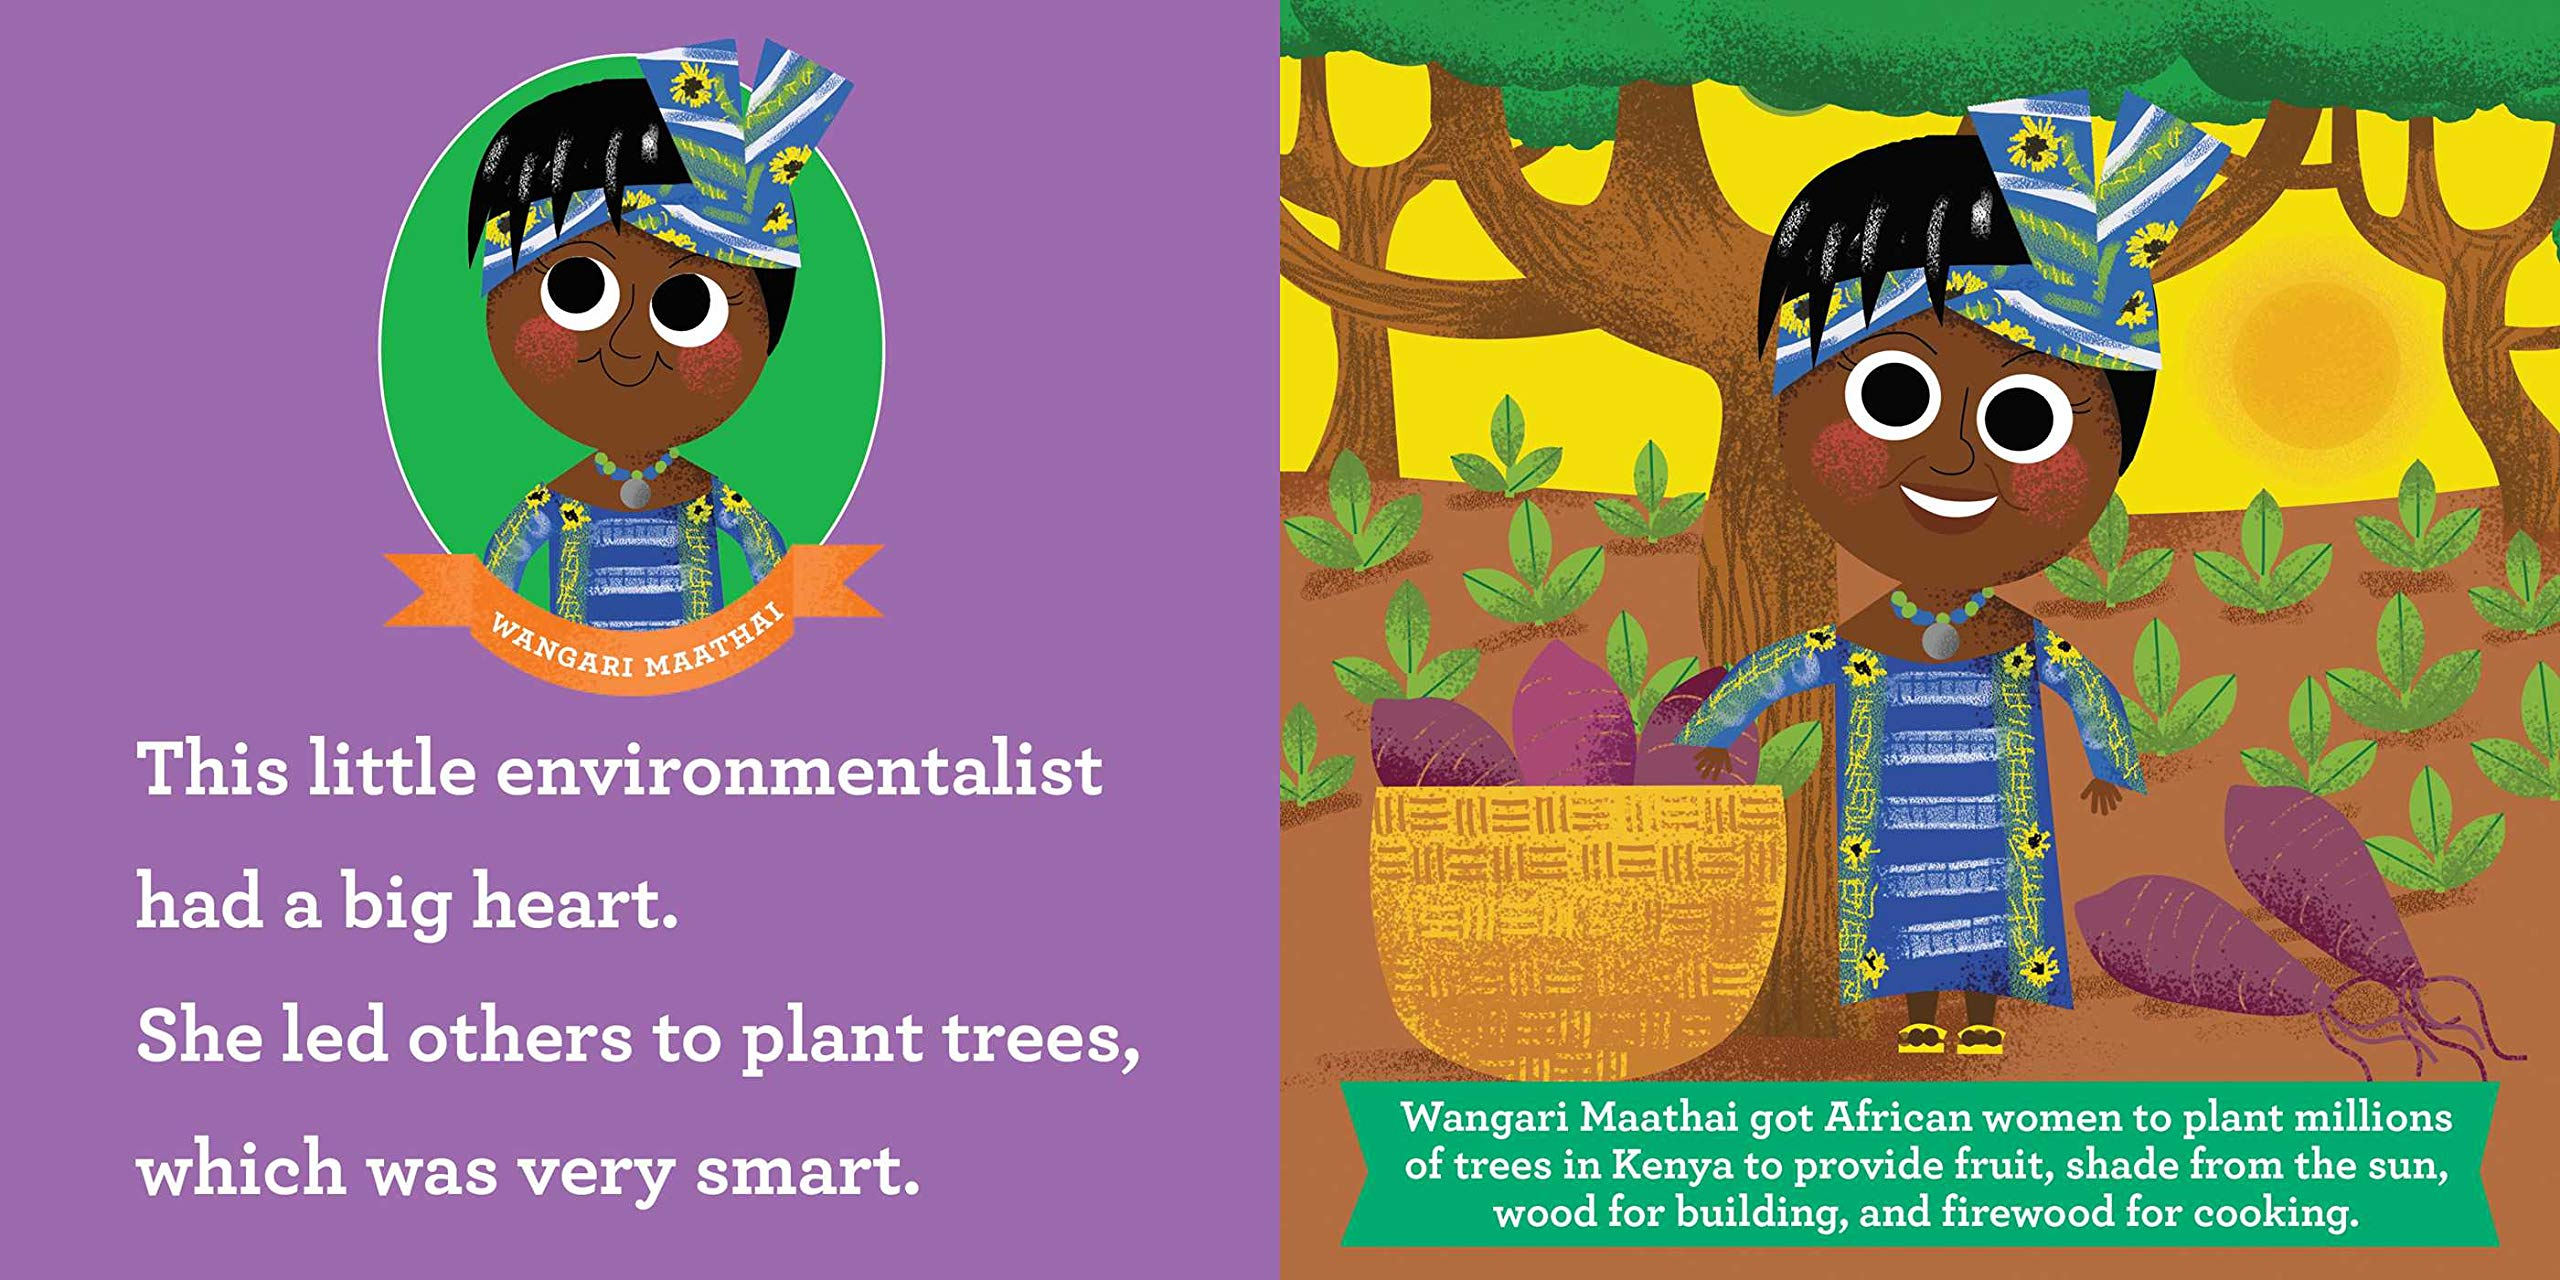 celebrate-picture-books-picture-book-review-this-little-environmentalist-wangari-maathai